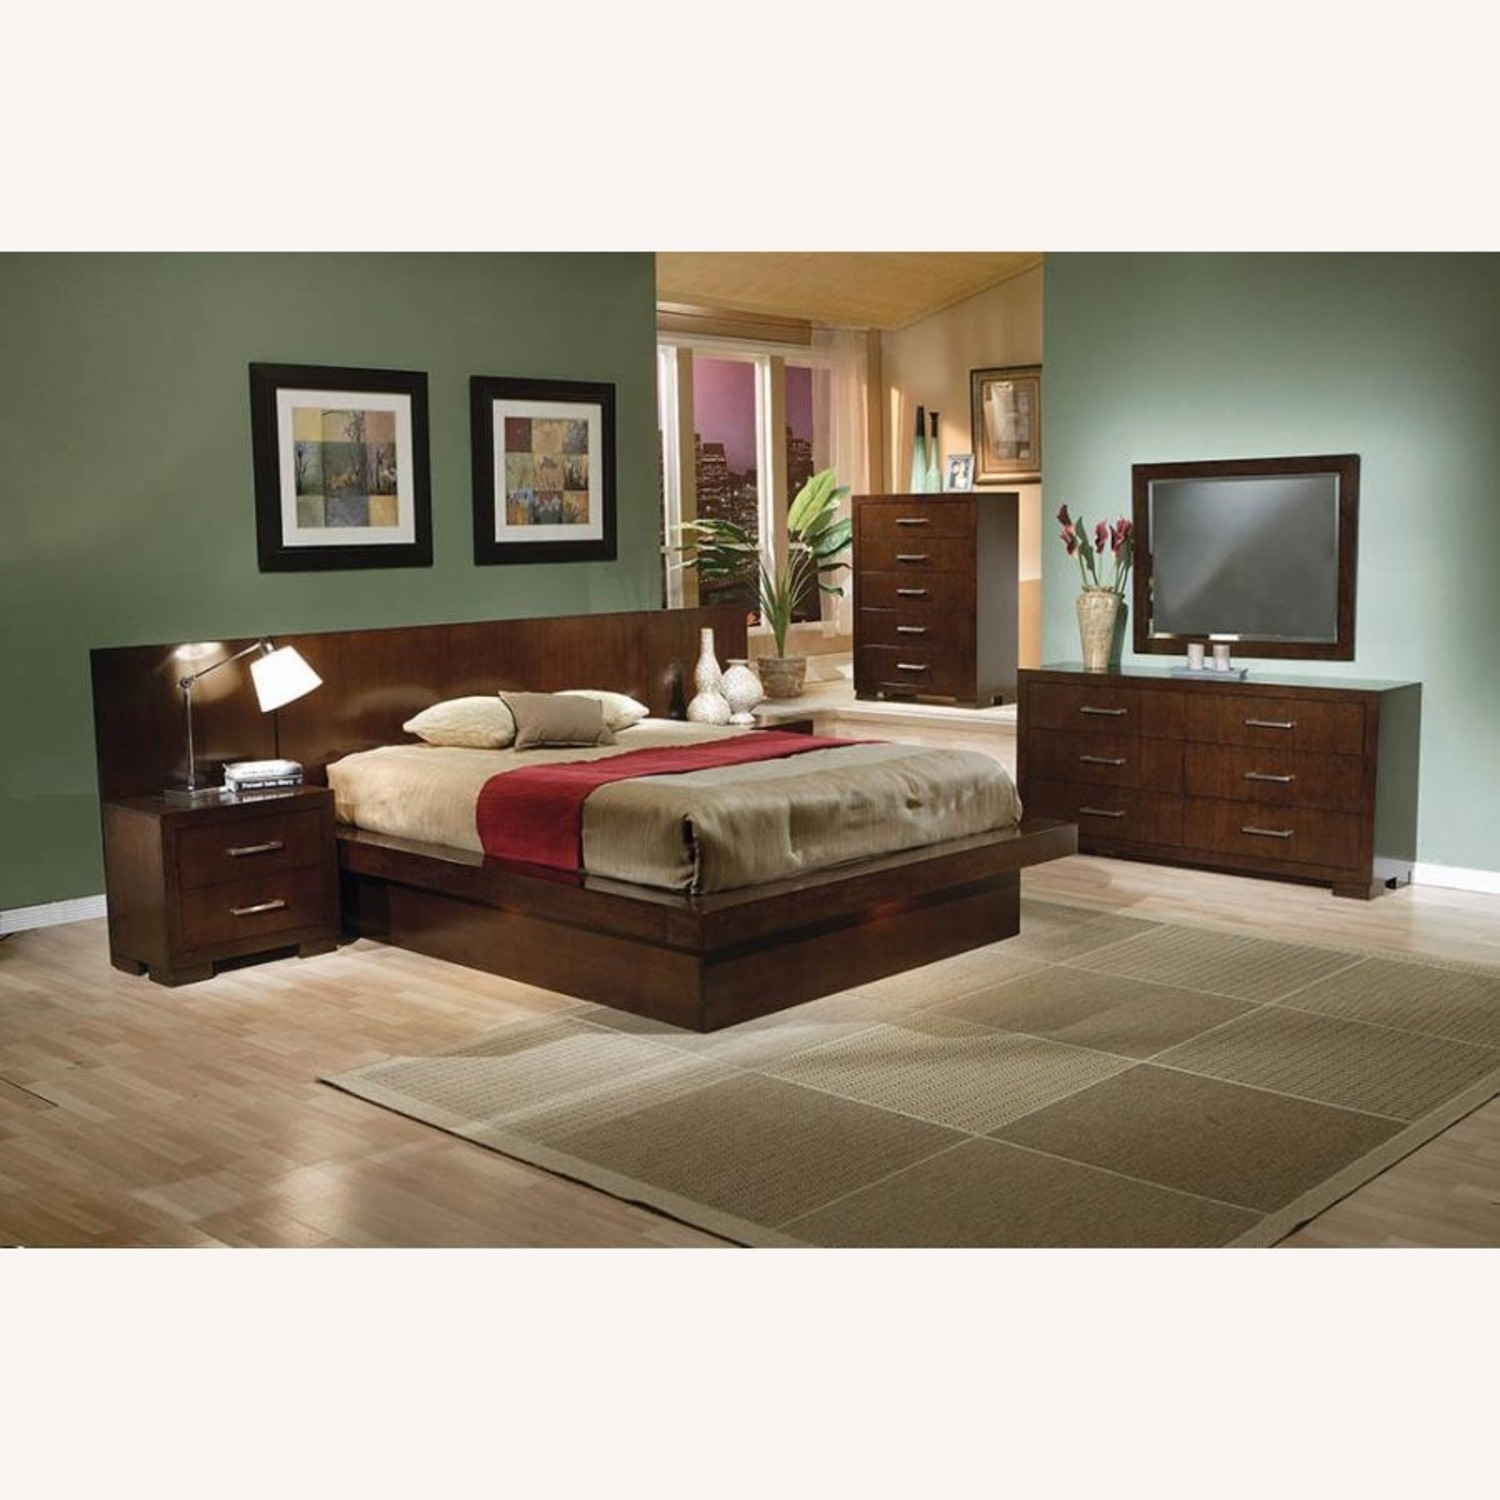 King Bed In Rich Cappuccino Finish - image-1